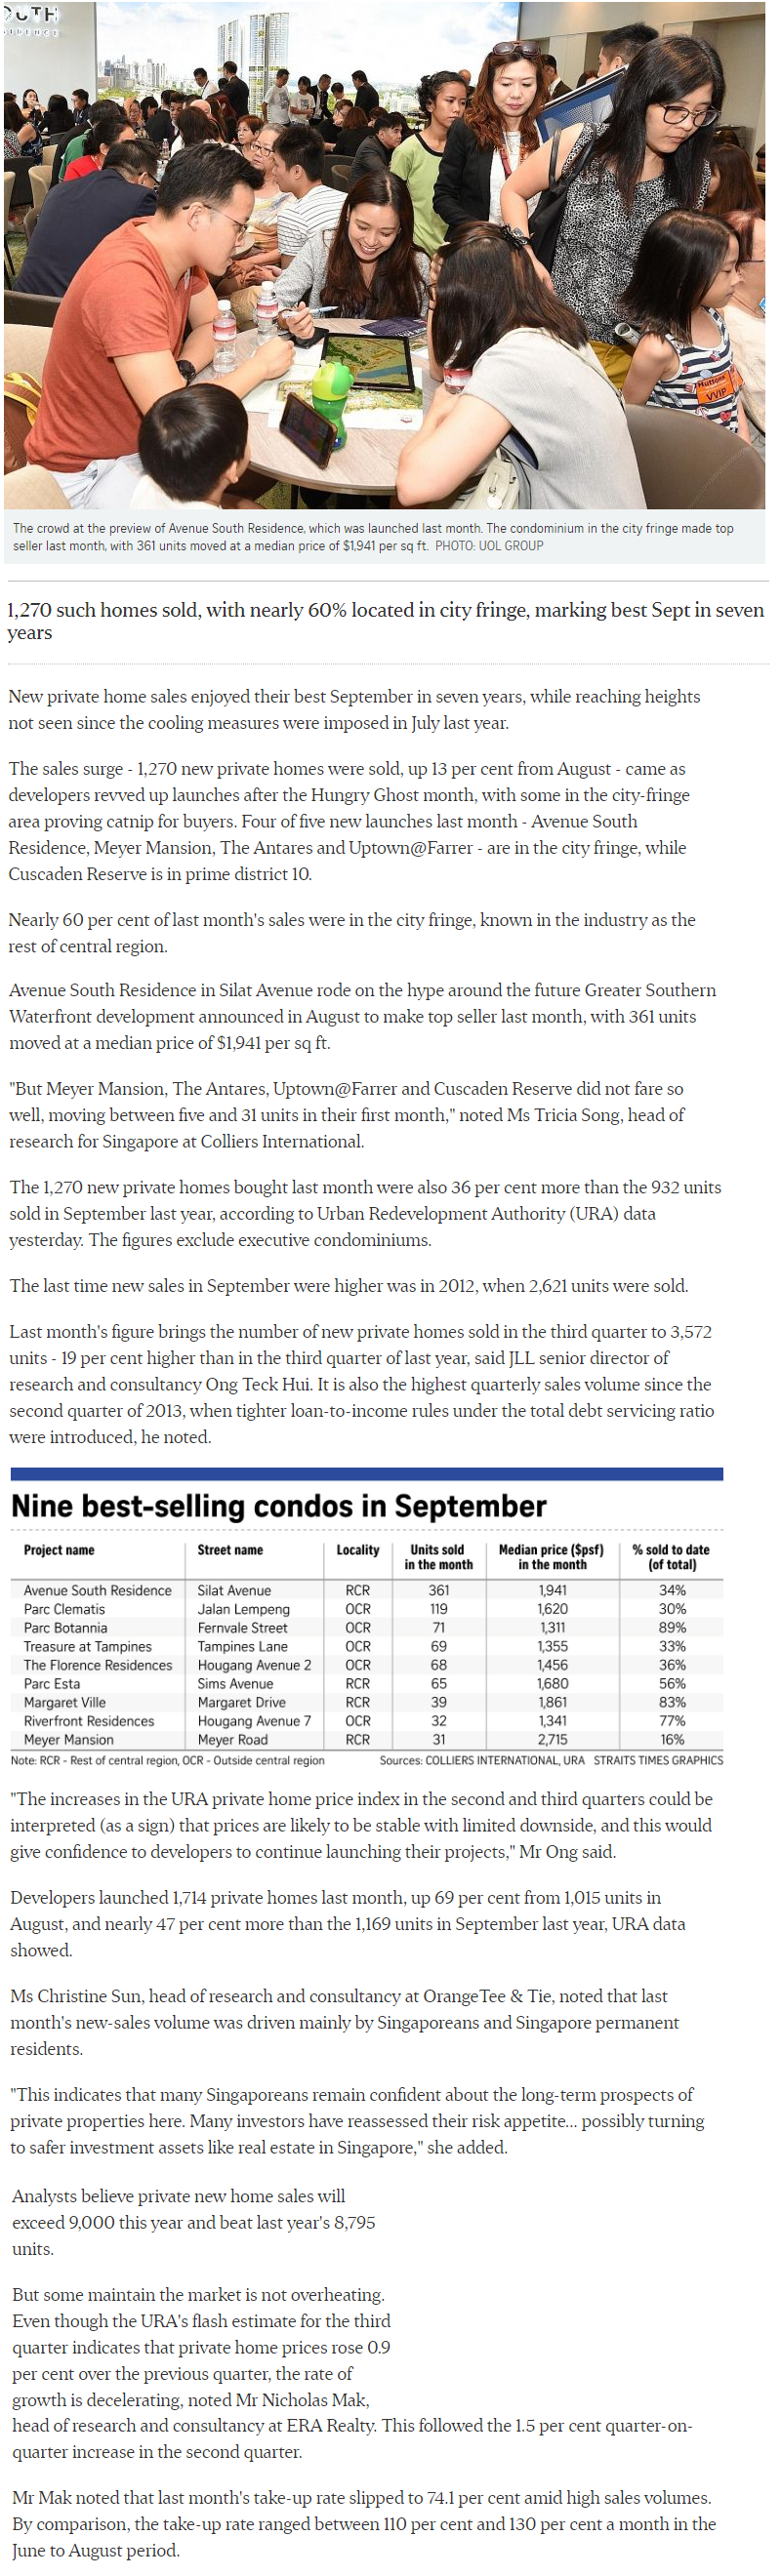 Pefect Ten - New private Home Sales Hit A Hight In September